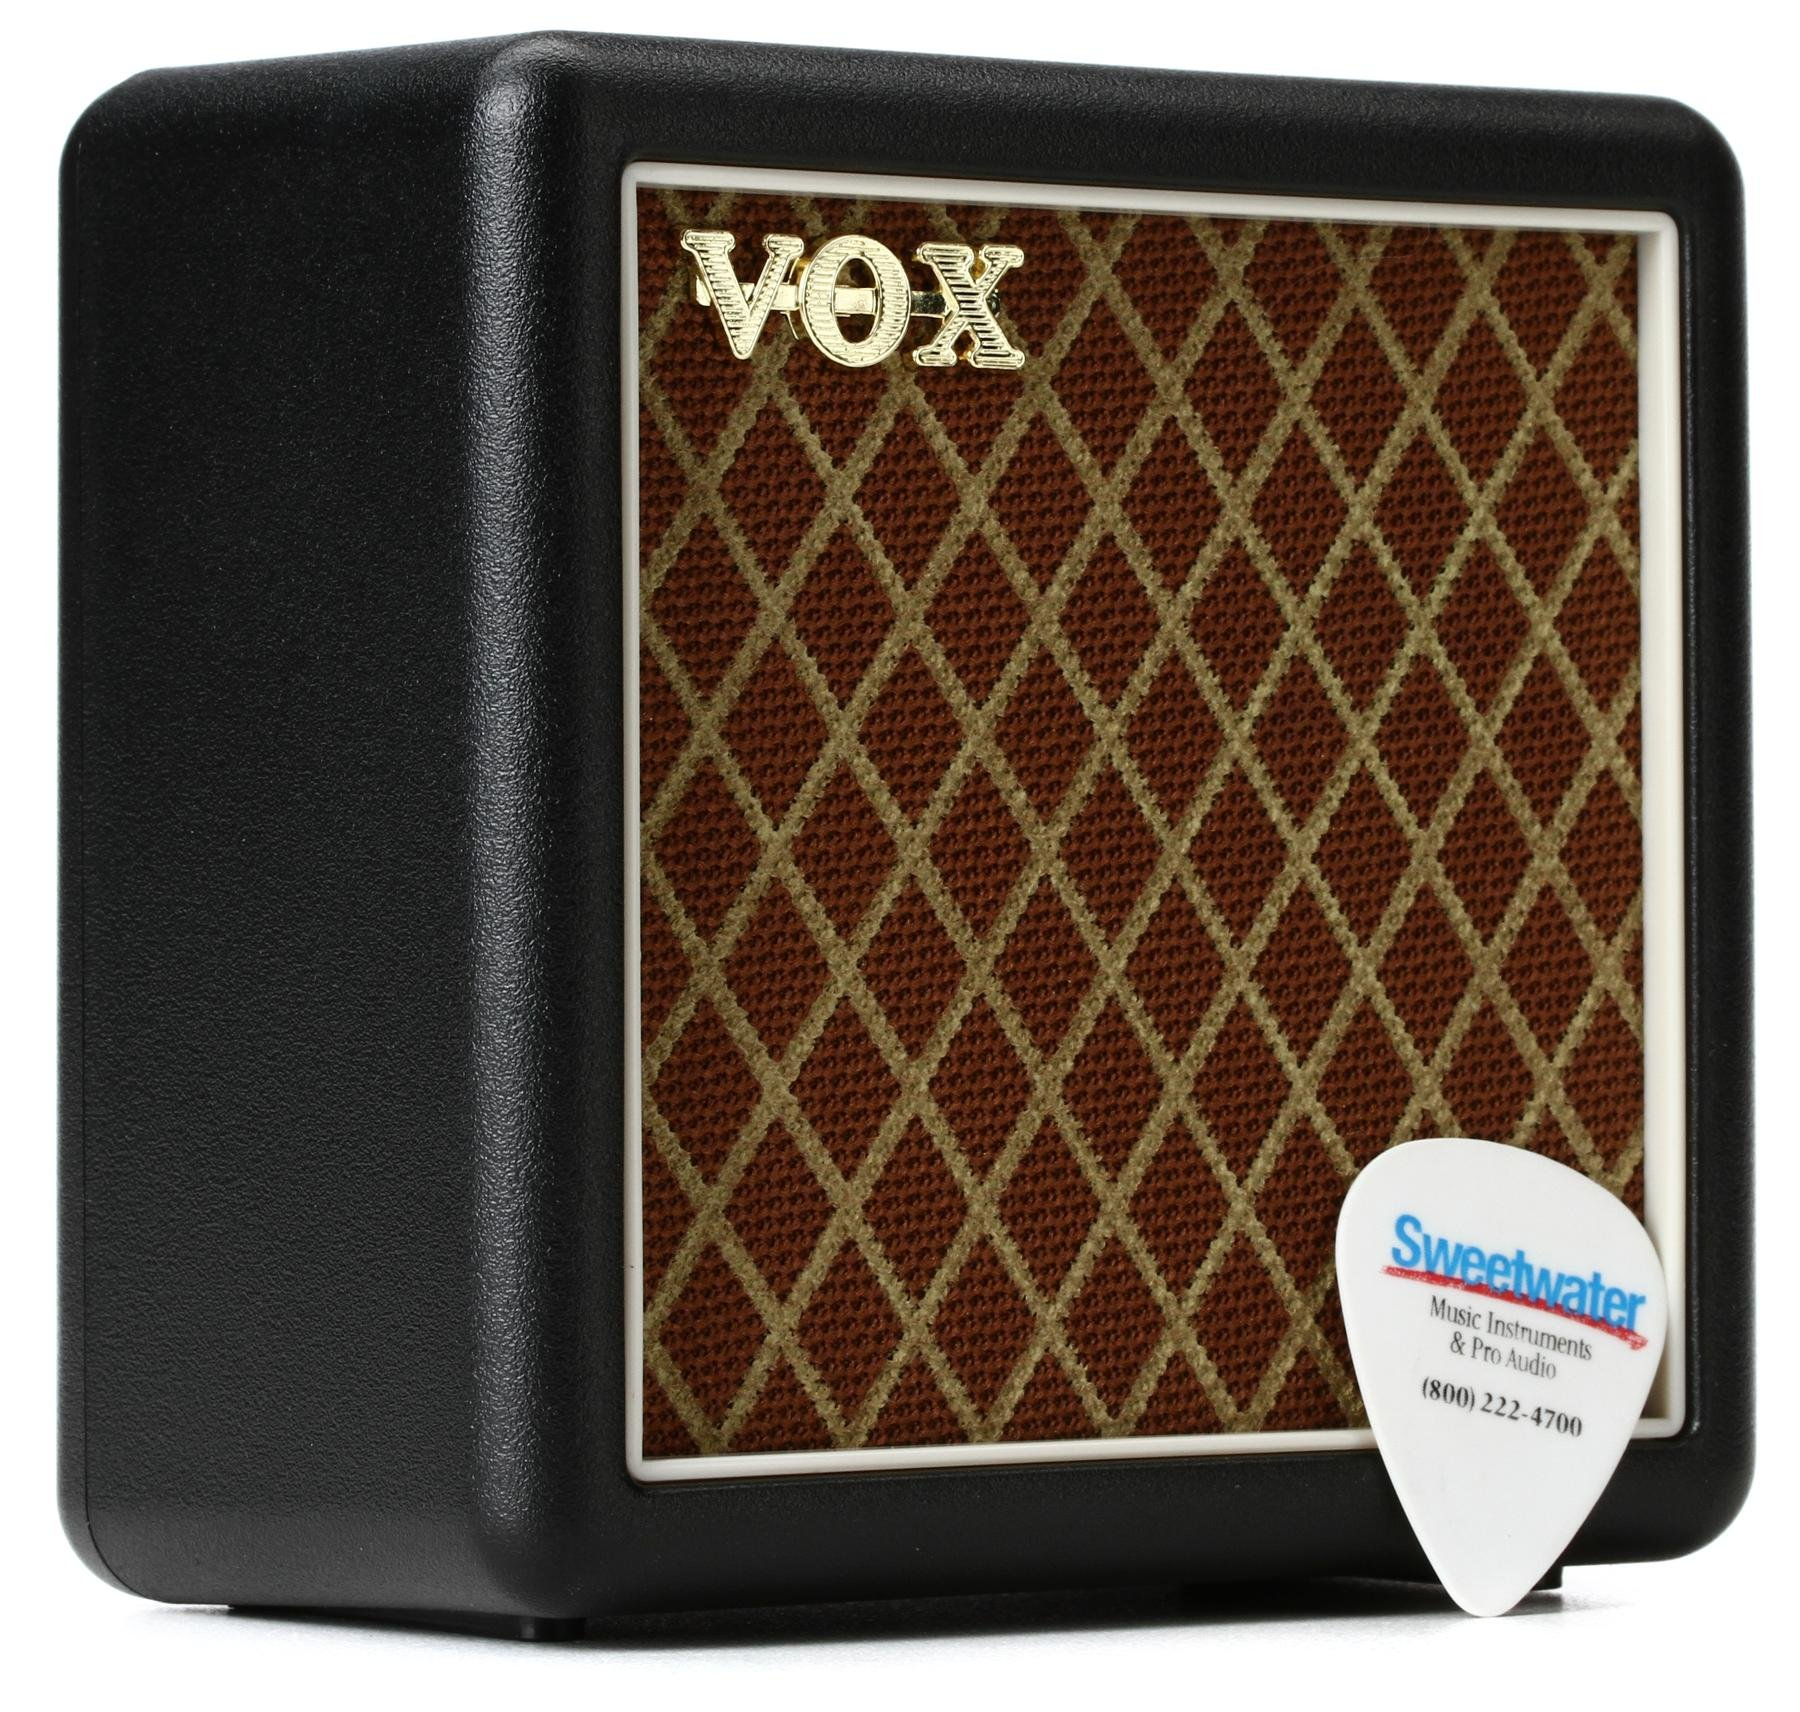 Vox Amplug 2 Cabinet Watt Mini For Sweetwater How To Build Box 2w Amplifier Image 1